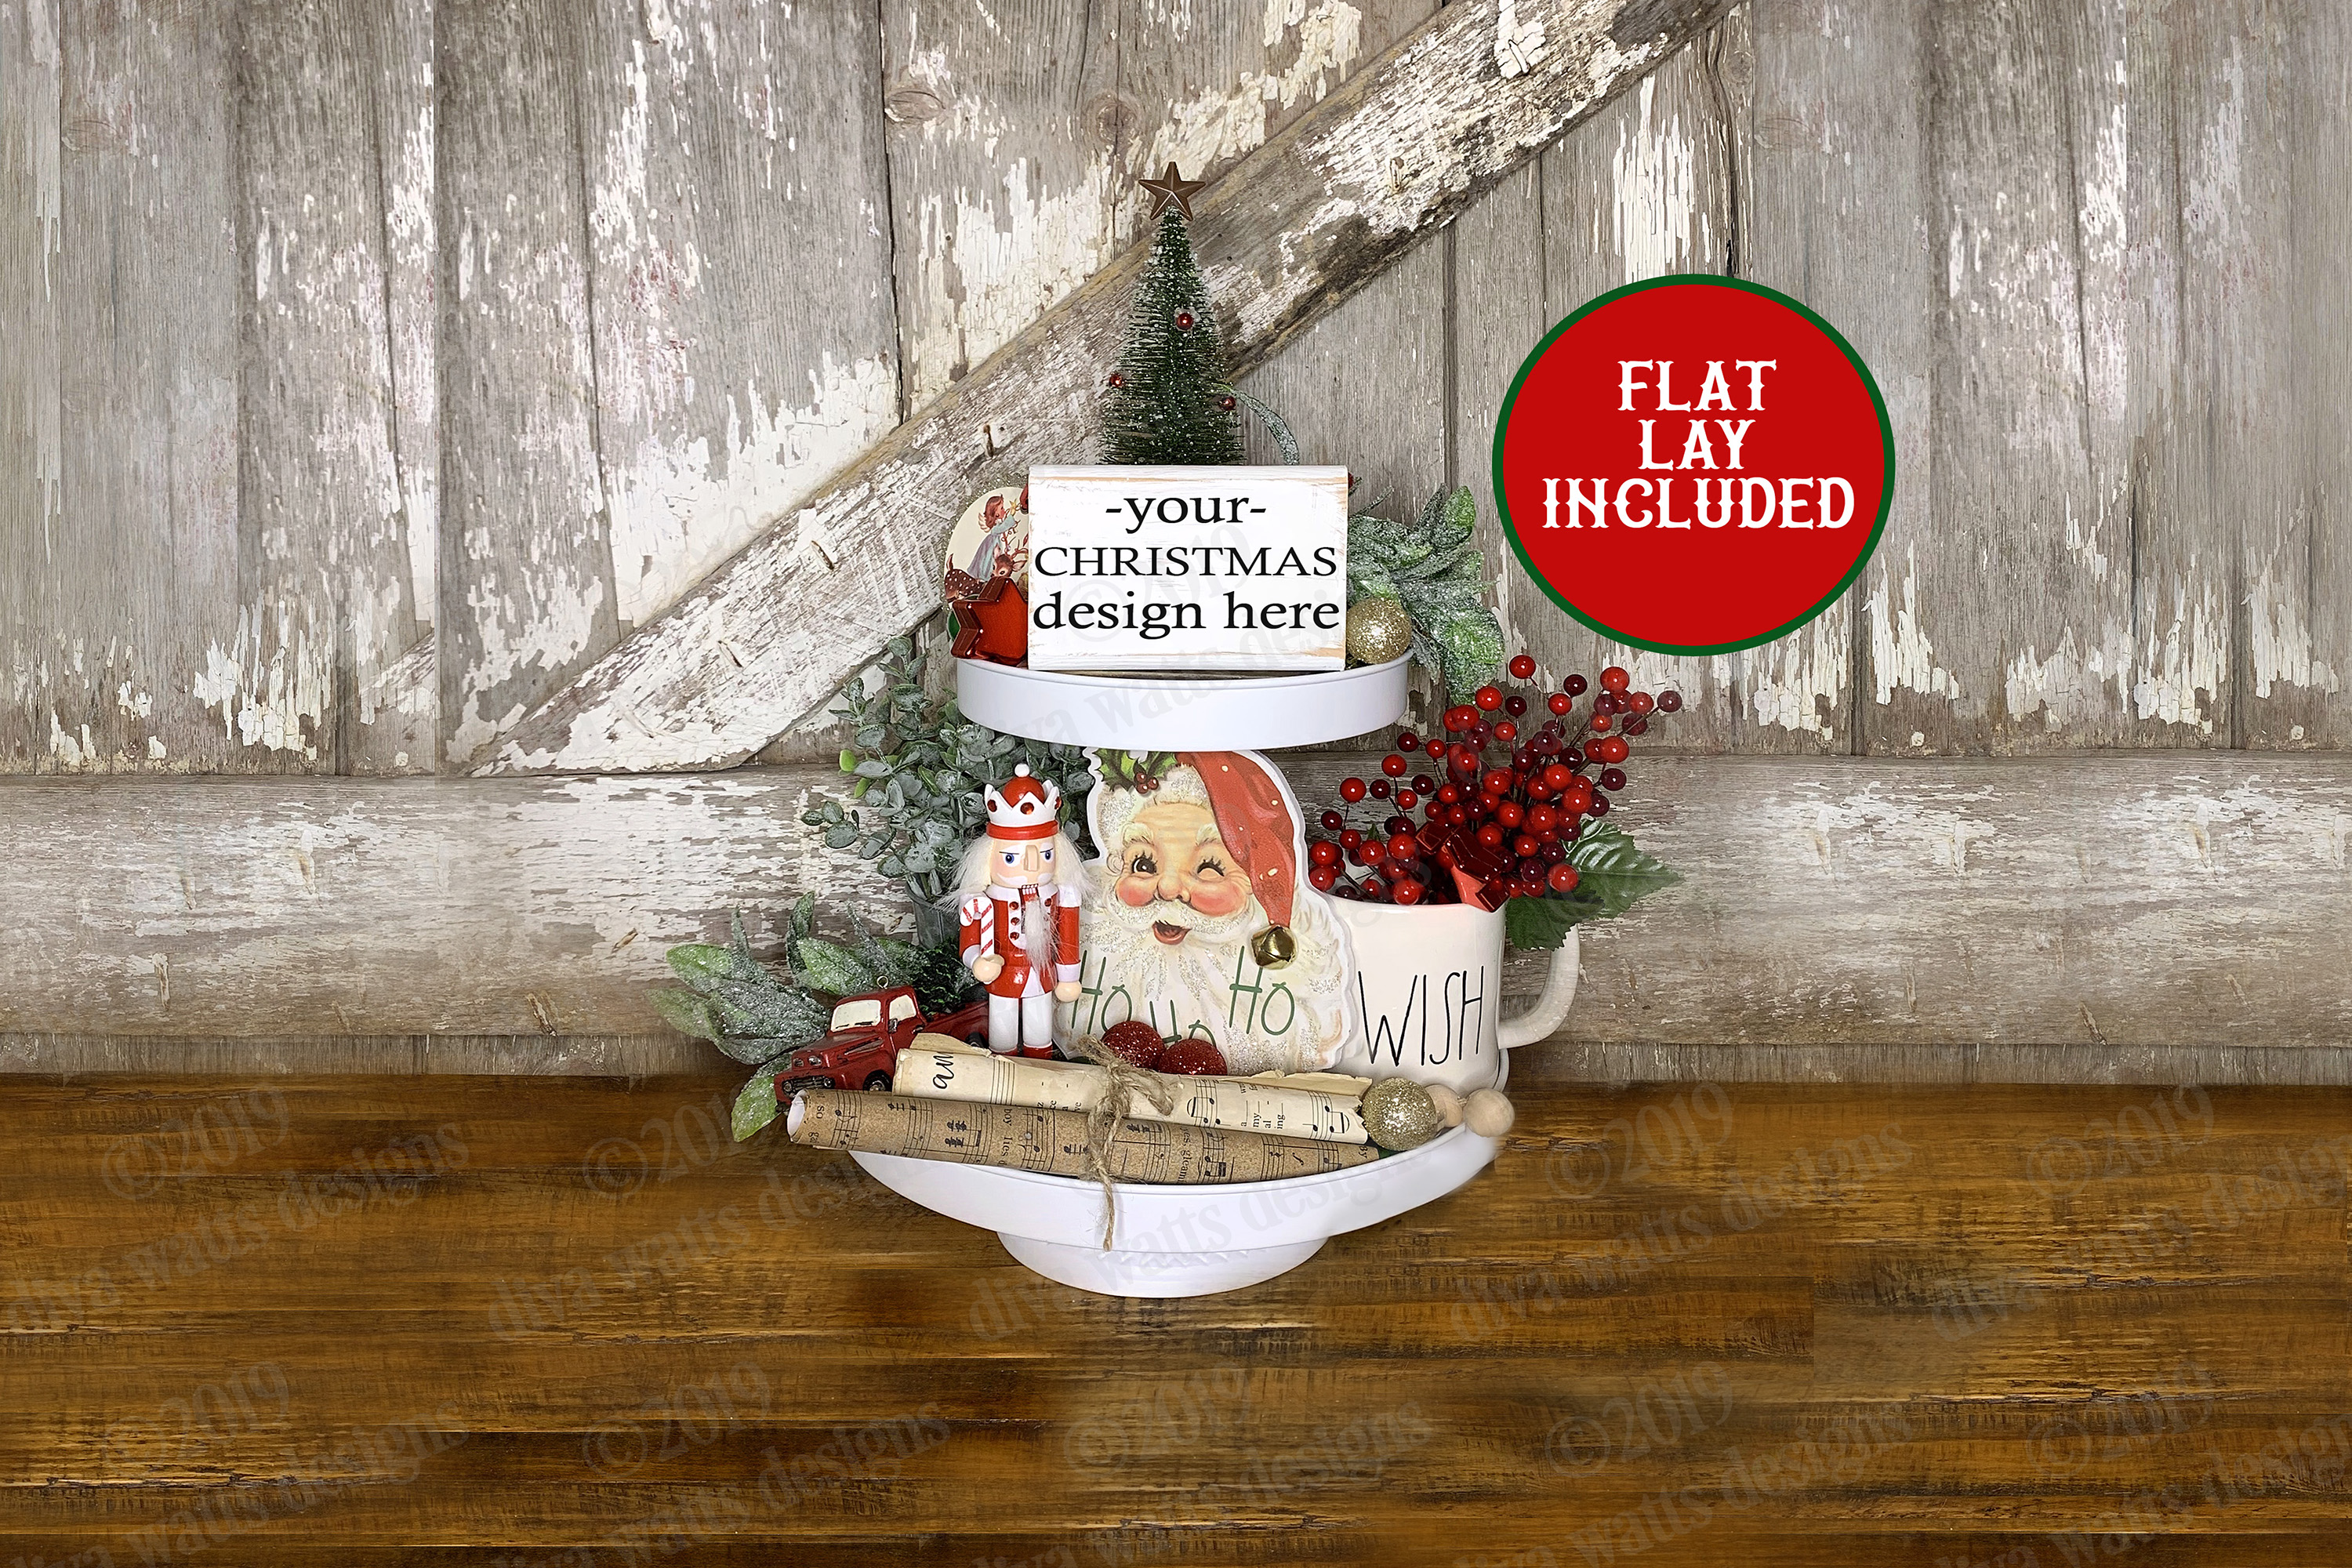 Christmas Tiered Tray Mockup Set with Flat Lay Included example image 3